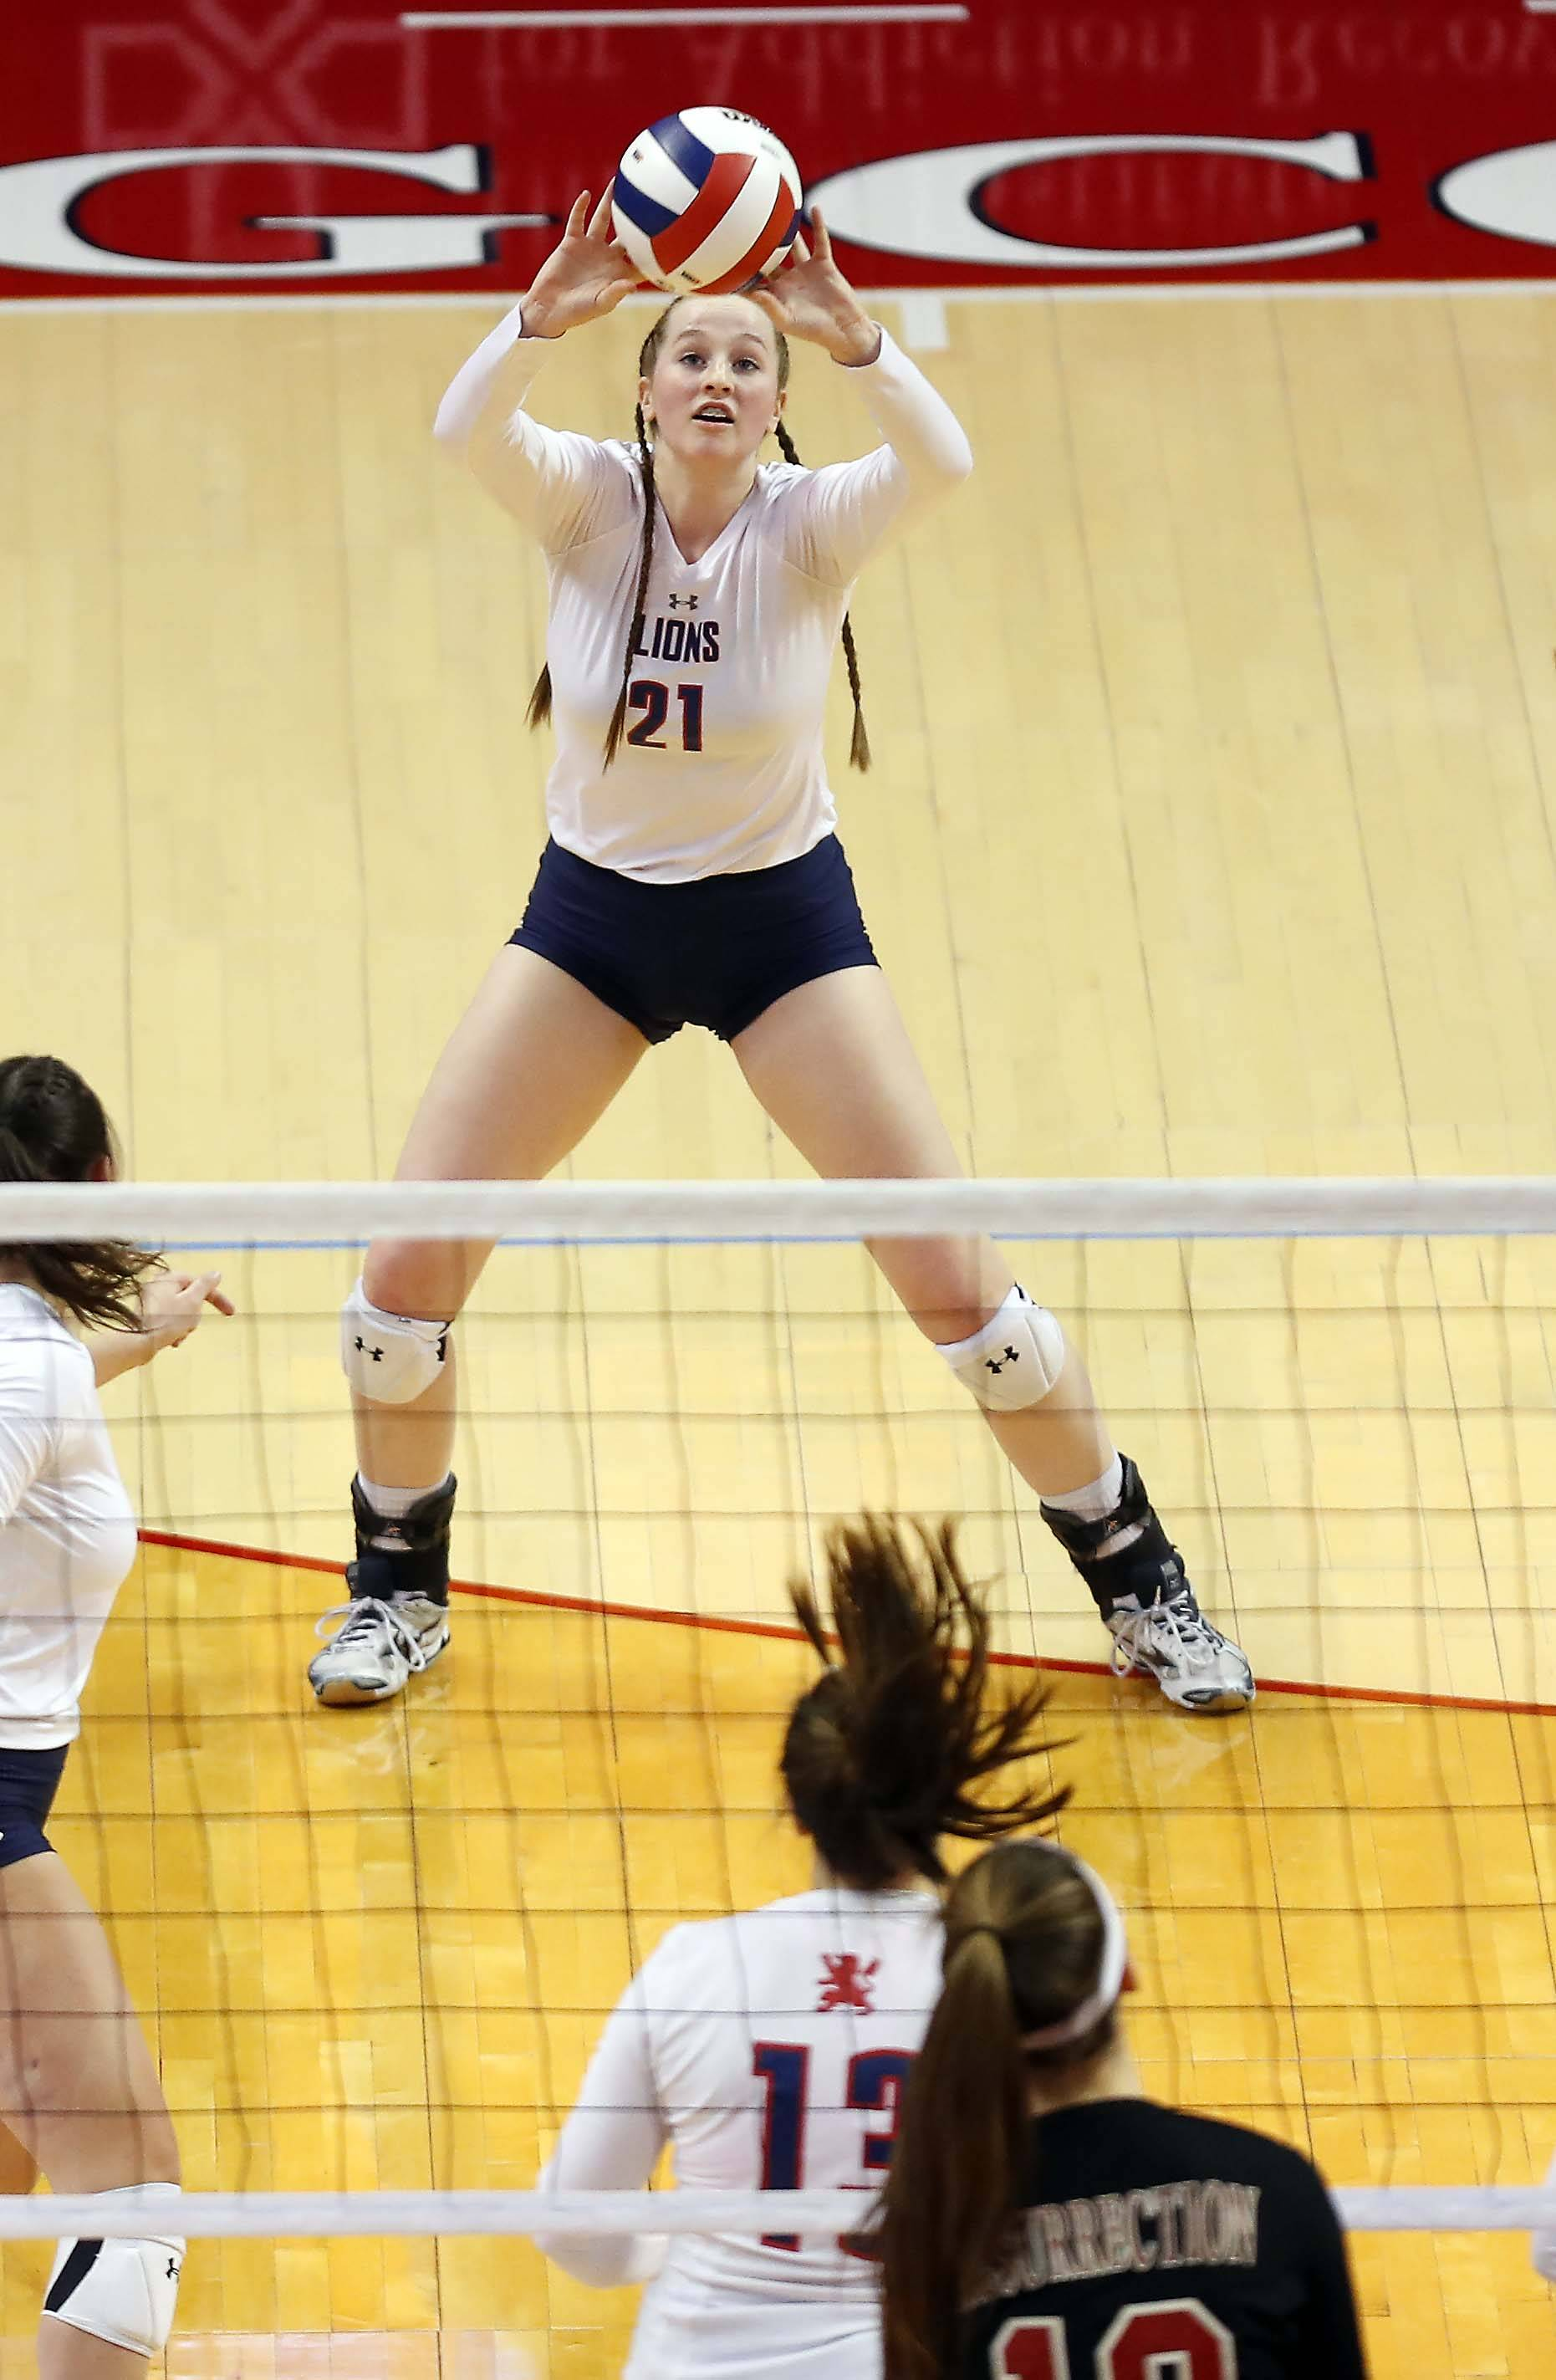 St. Viator's Catherine Hickey (21) returns a serve in the semifinals of the IHSA Class 3A state girls volleyball tournament at Redbird Arena in Normal.